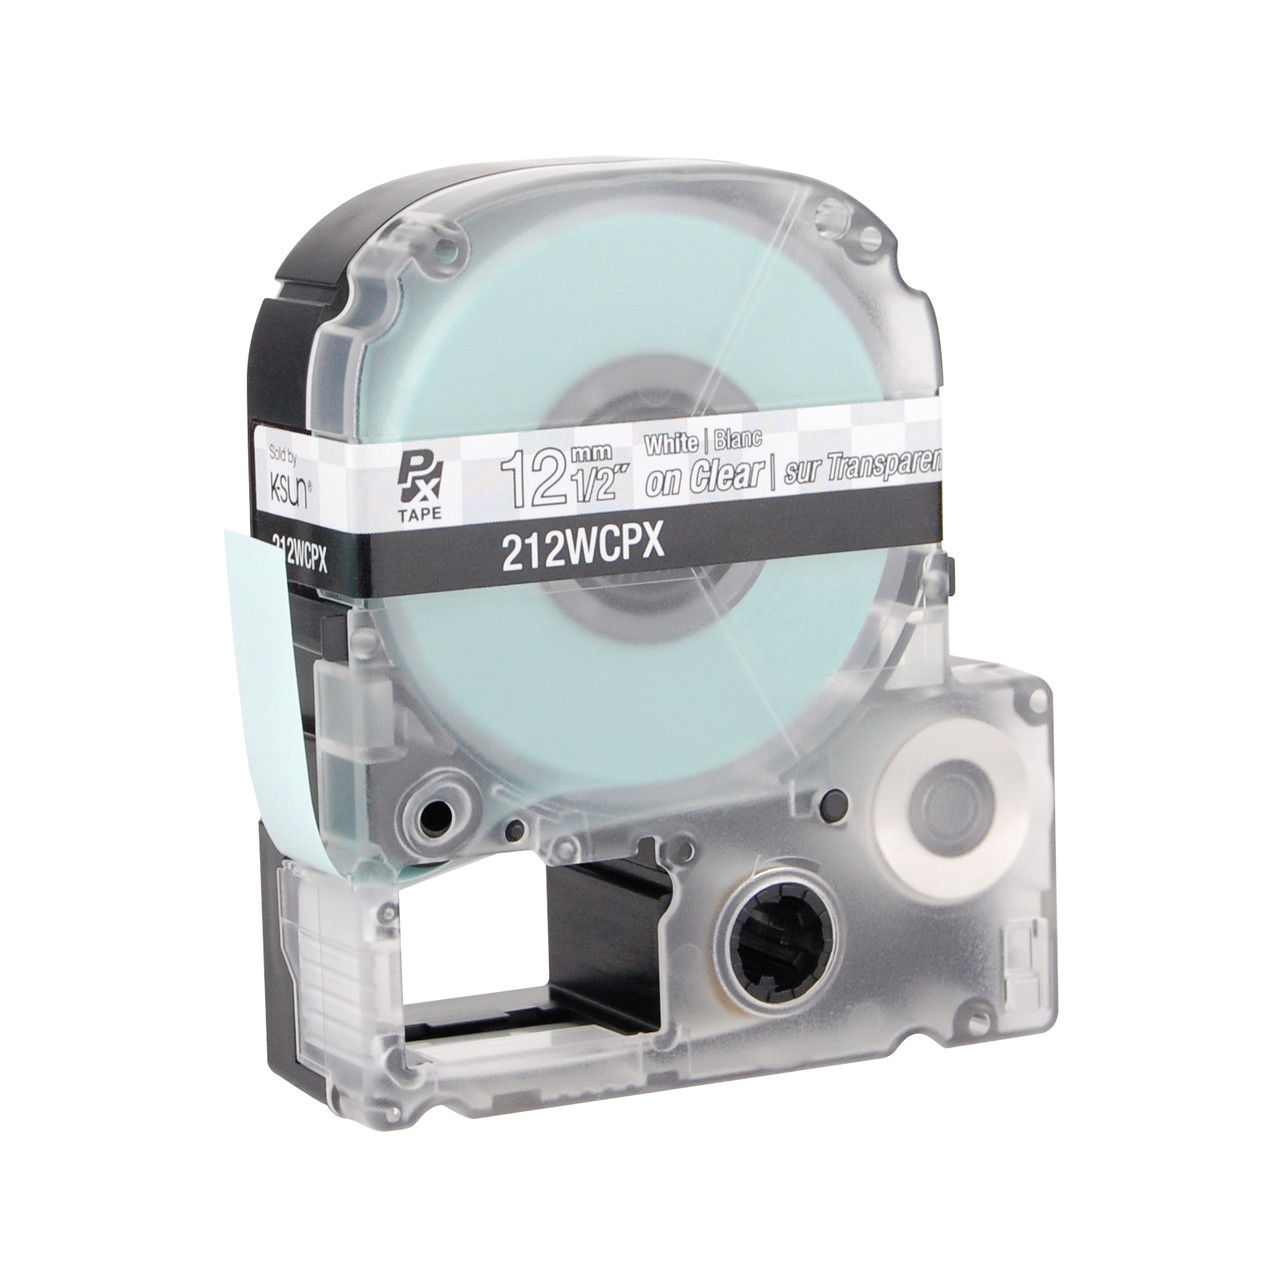 "Epson 212WCPX 1/2"" Clear Glossy Polyester Label PX Tape"